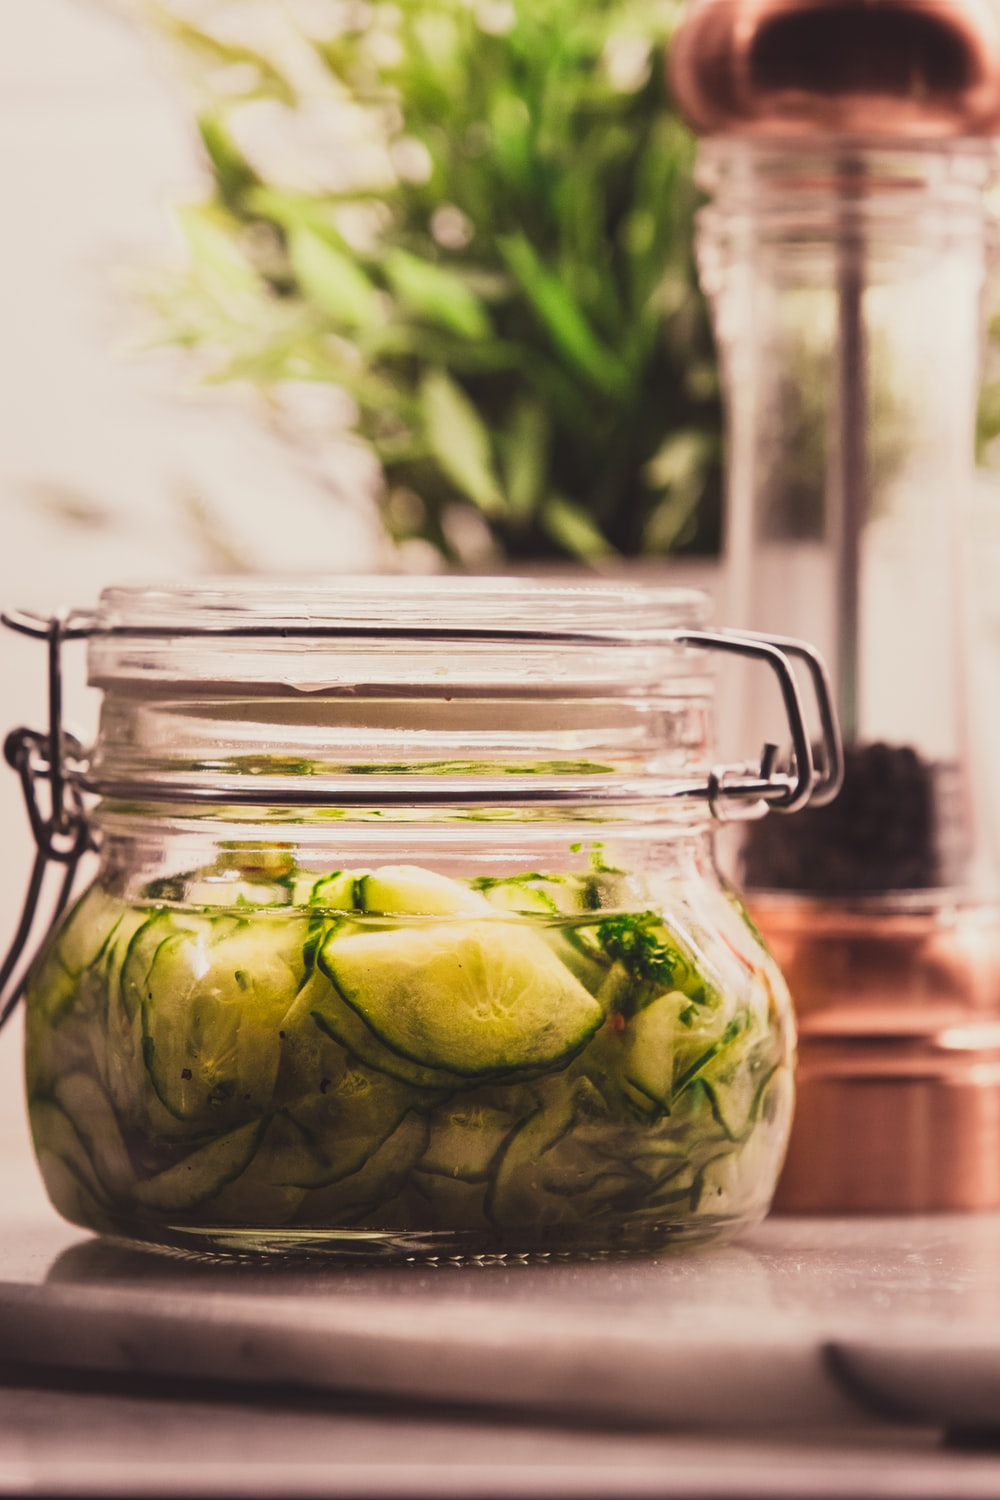 clear glass jar with green fruit inside